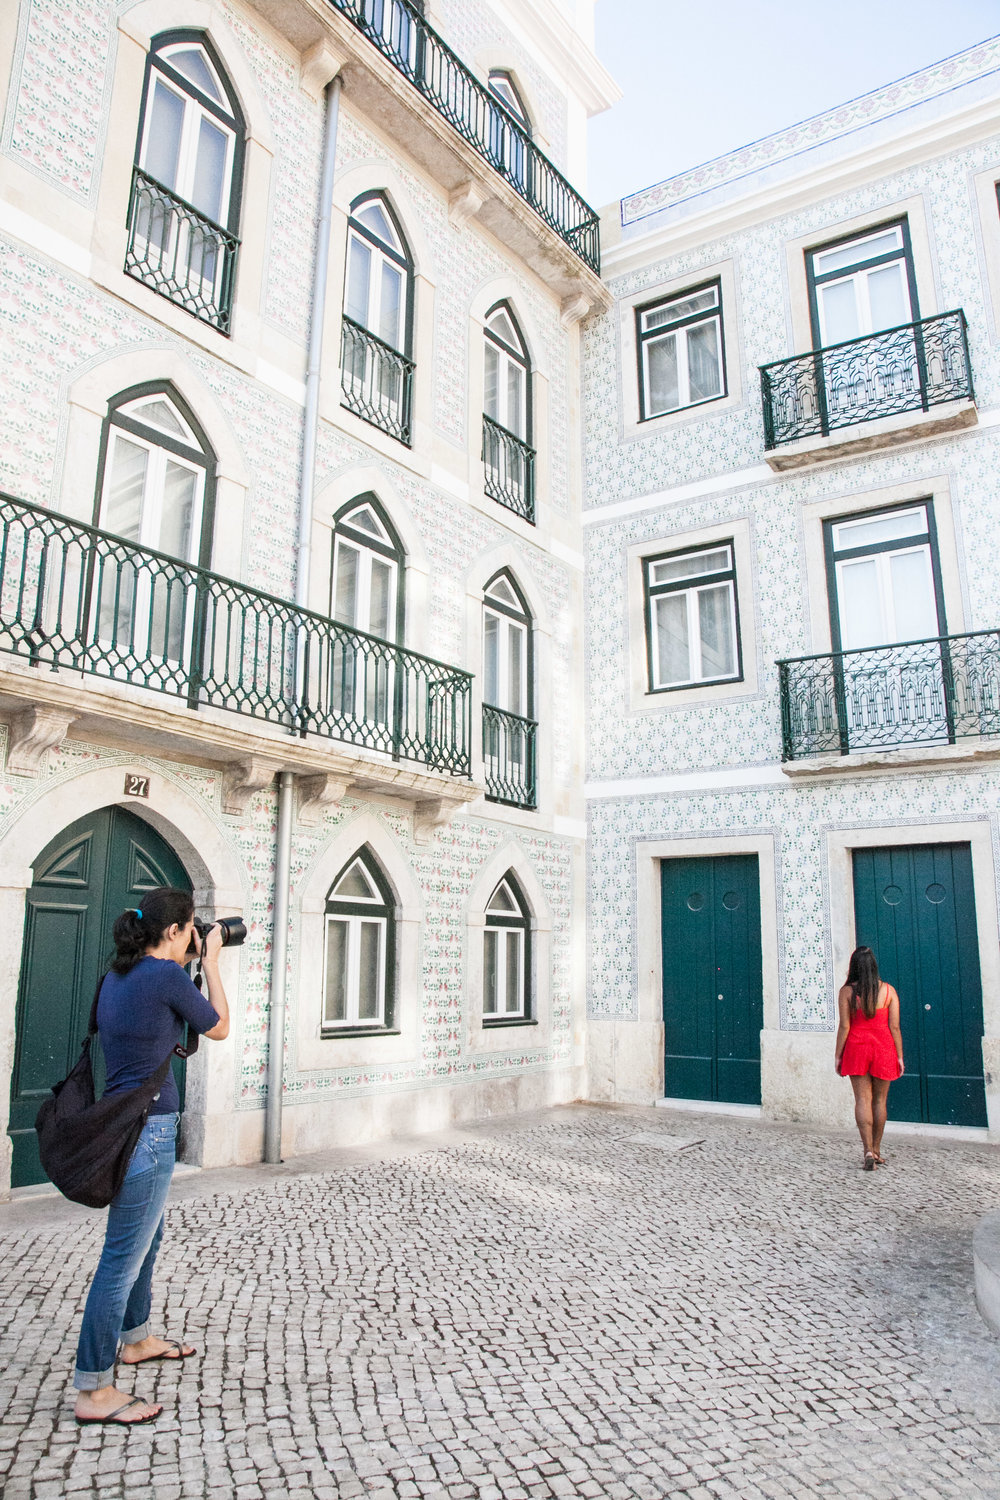 Behind the scenes: our Shoot My Travel photographer Marie capturing me with the beautiful tiles of Lisbon's Alfama district.